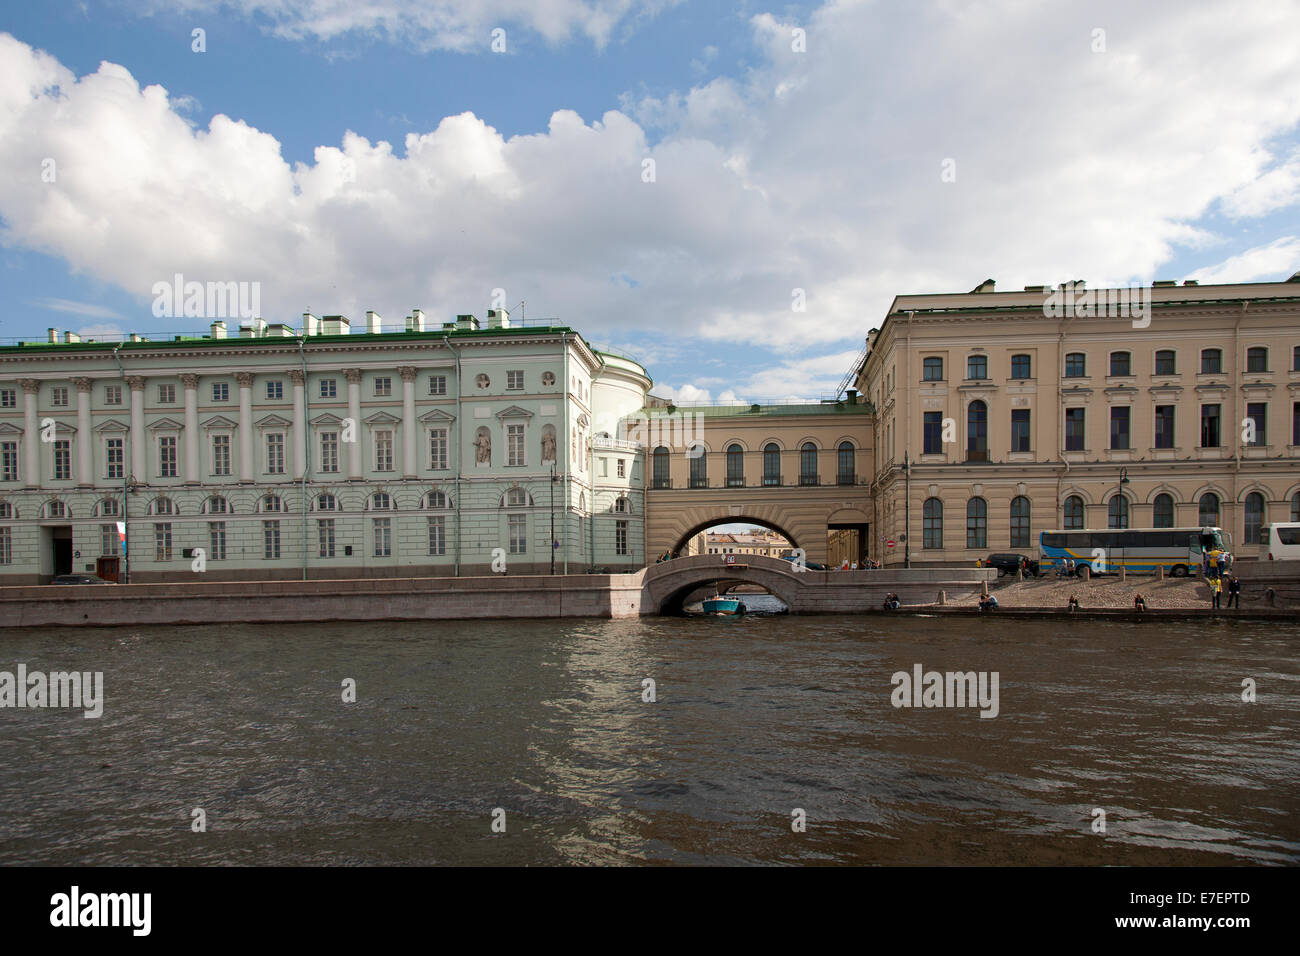 A small Canal Separates Buildings along the Neva River, St. Petersburg - Stock Image